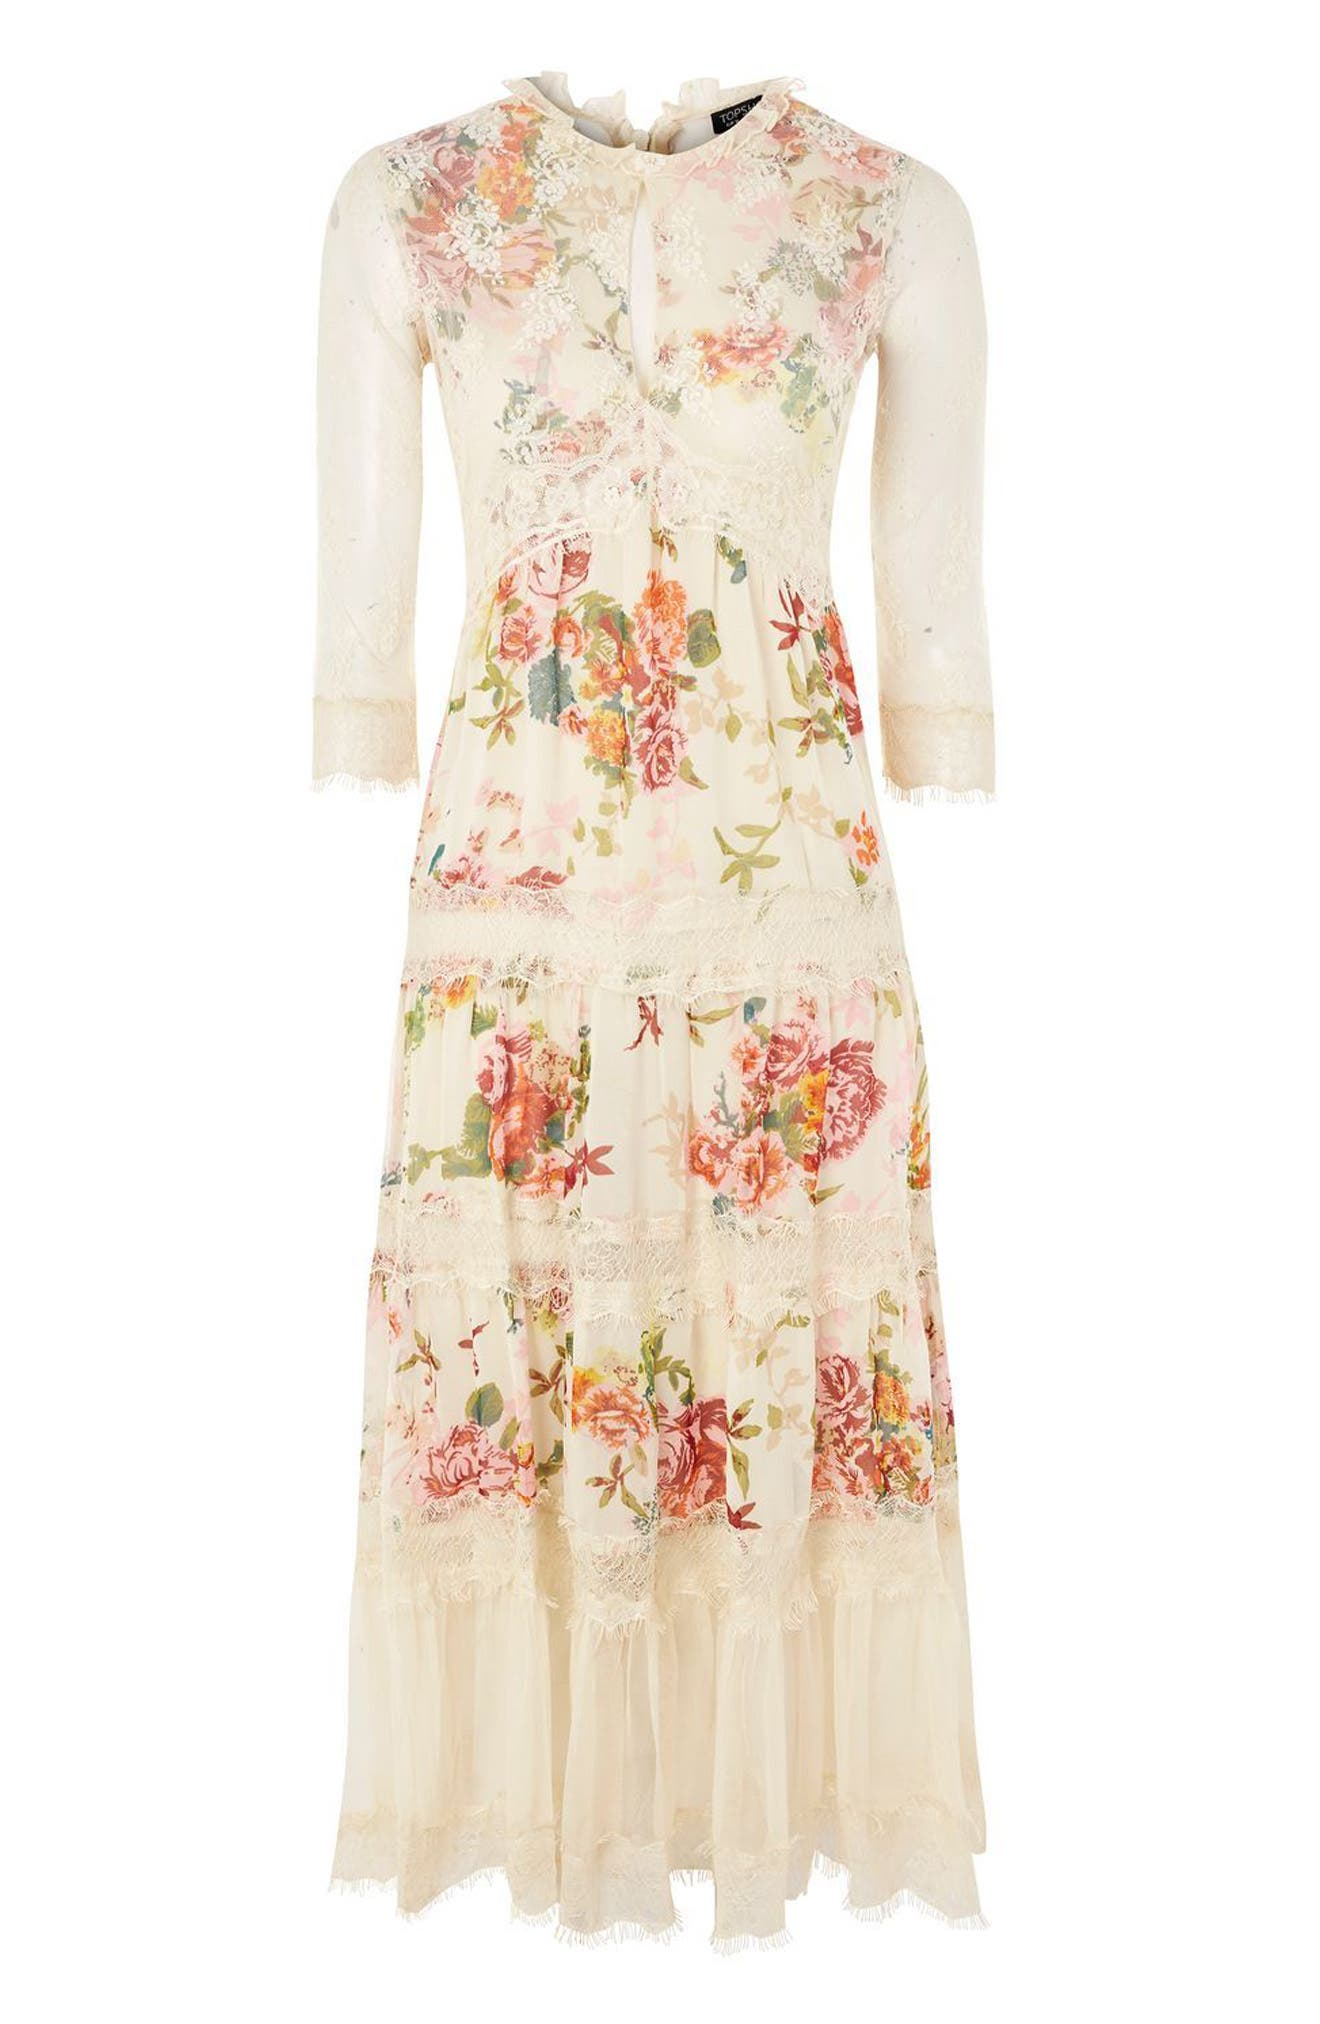 Lace Tier Floral Midi Dress,                             Alternate thumbnail 4, color,                             Ivory Multi